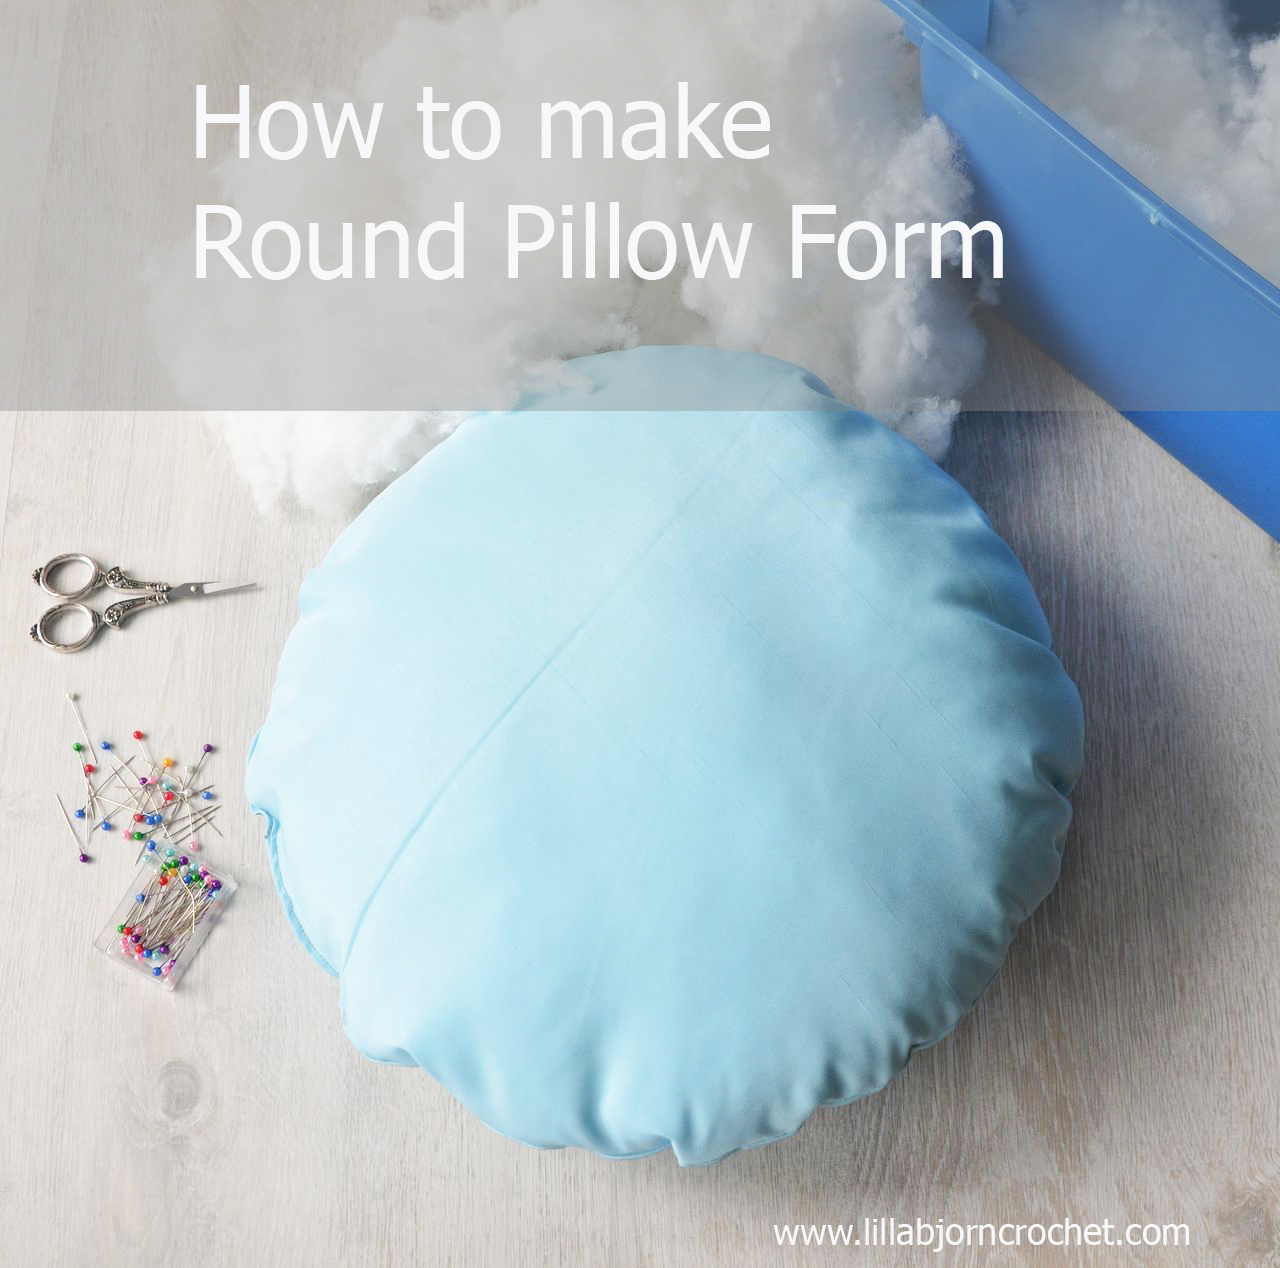 4 Easy Steps to remake a square pillow into a round insert form. Tutorial by Lilla Bjorn Crochet